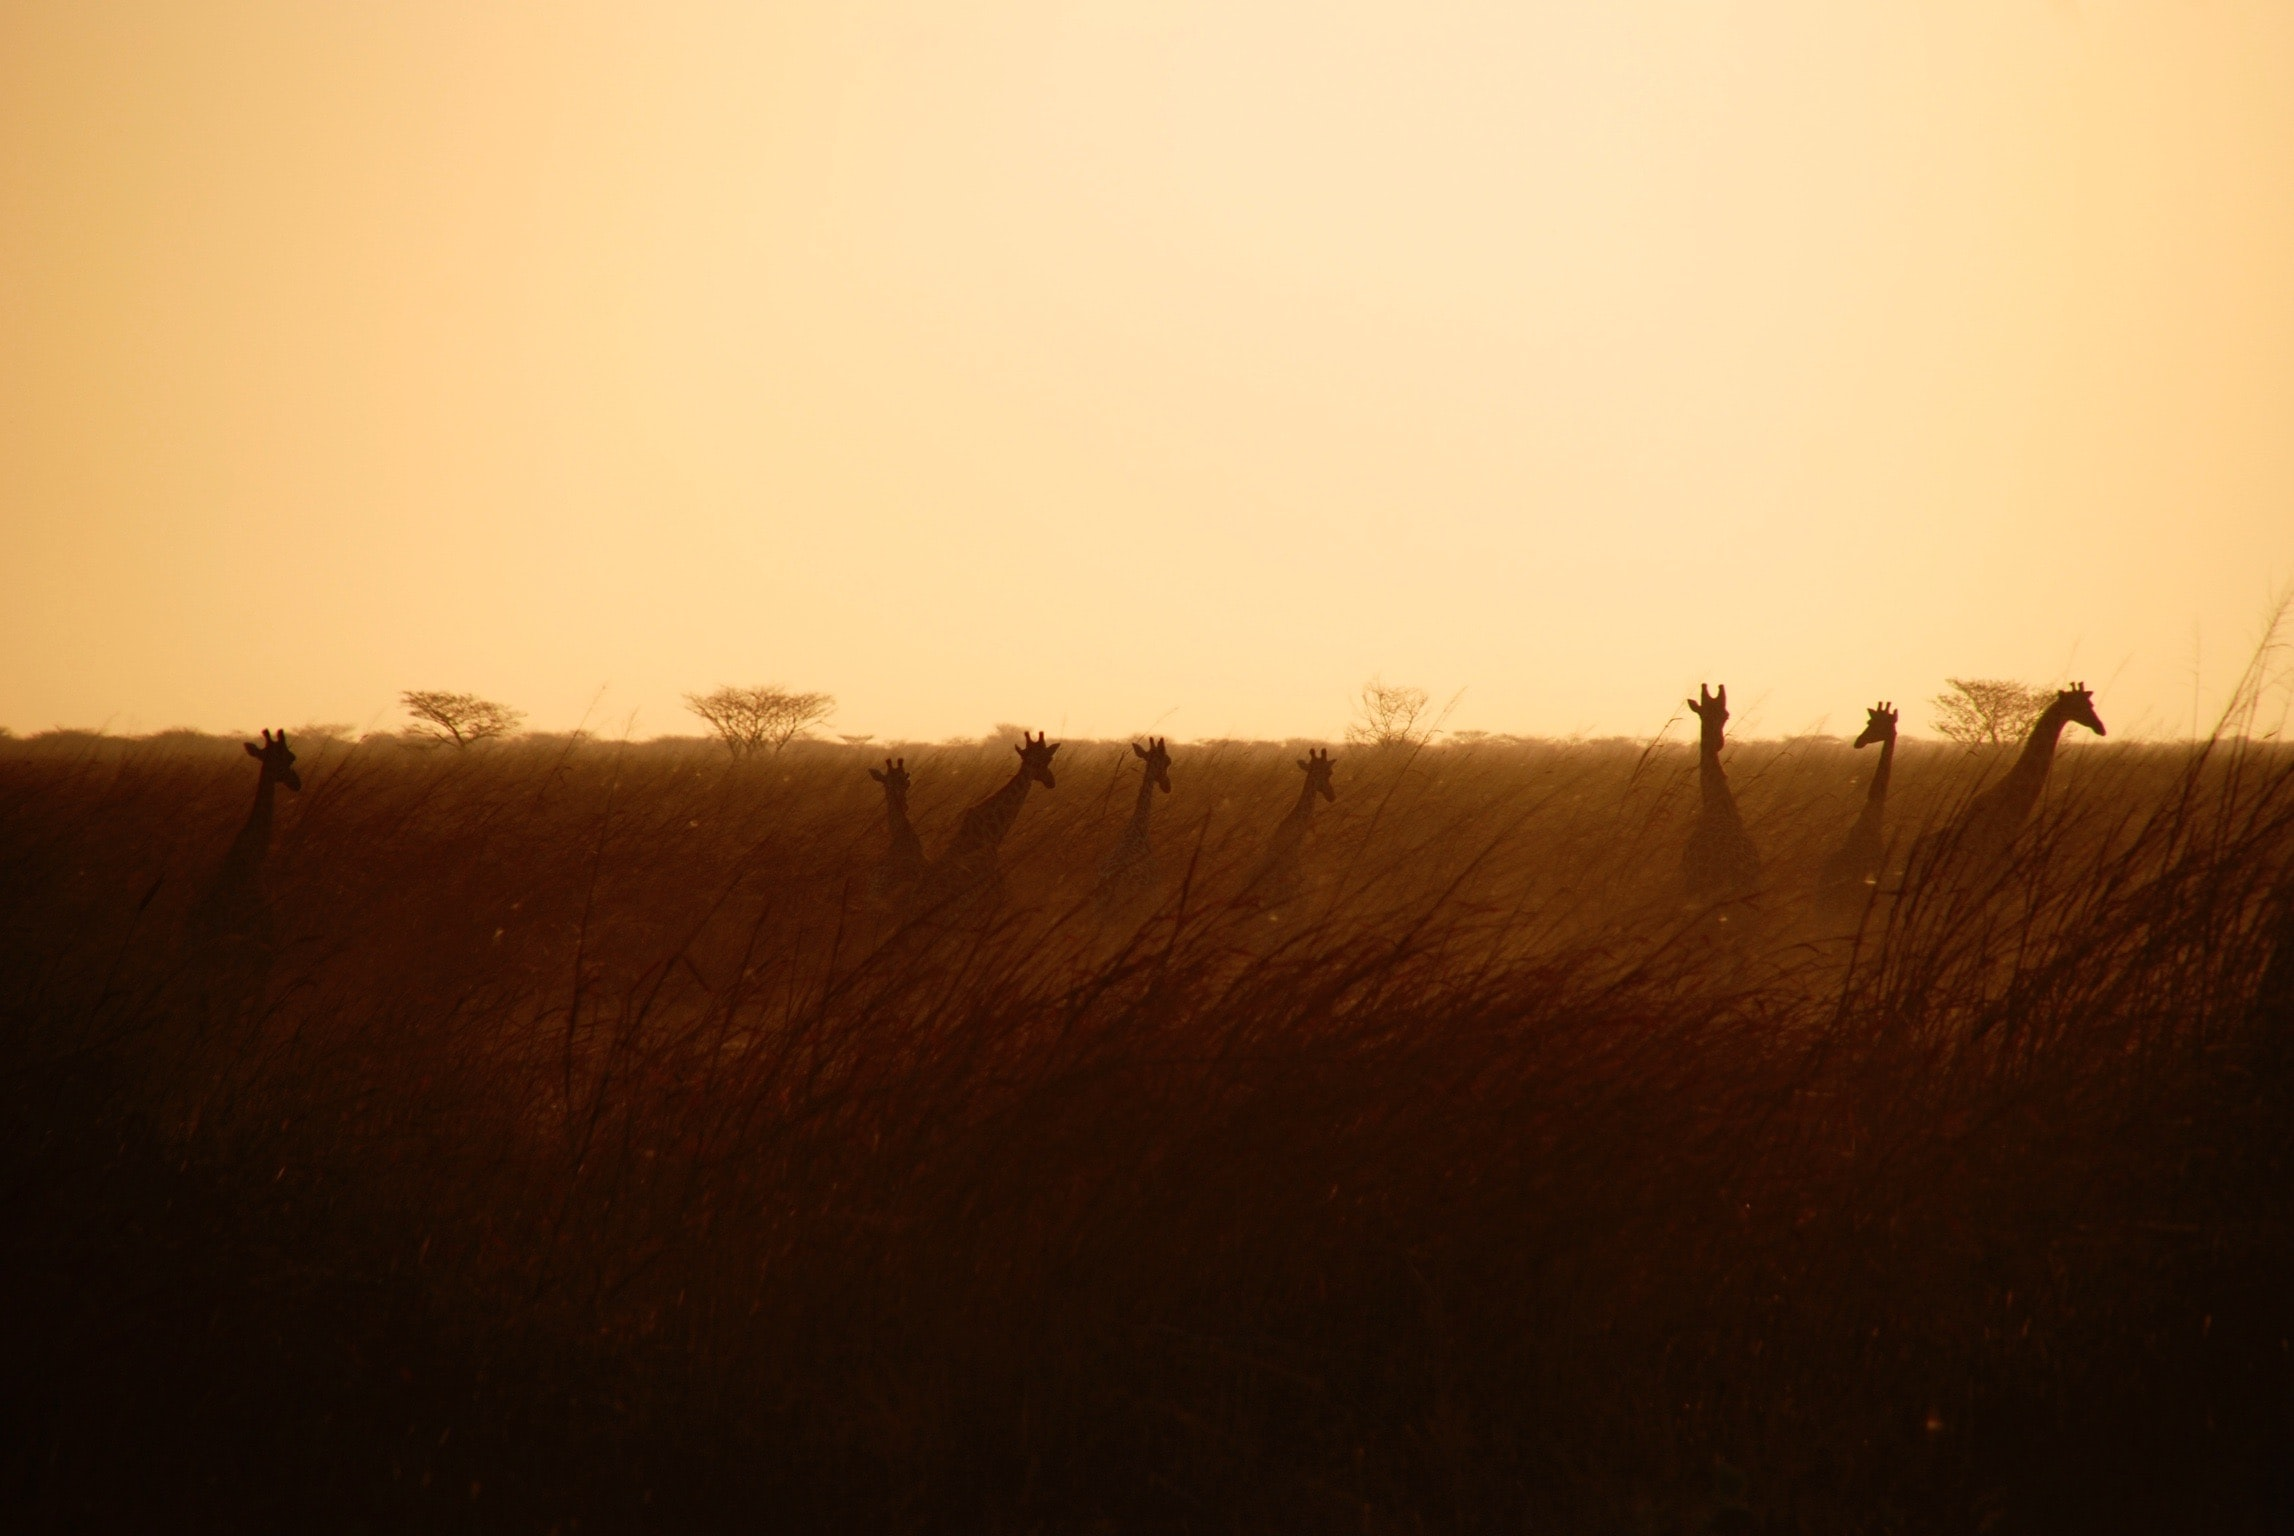 silhouette of giraffes on field at sunset